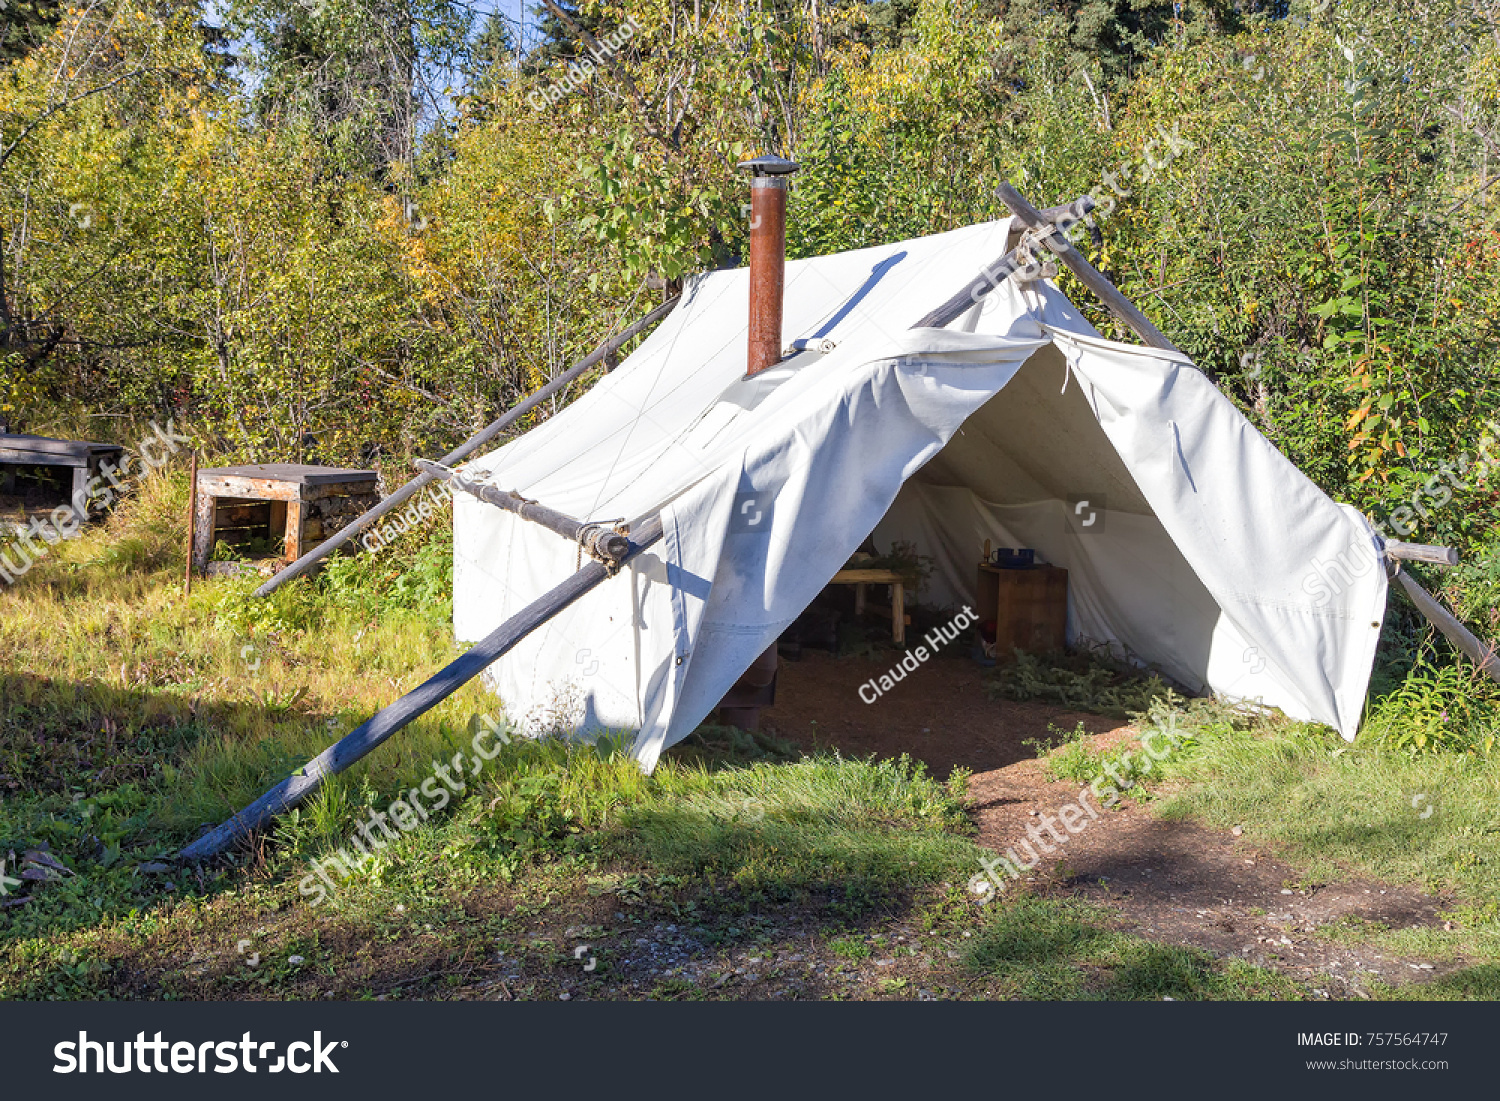 Alaskan canvas wall tent in an Athabascan village on the bank of the Chena river near Fairbanks, Alaska..